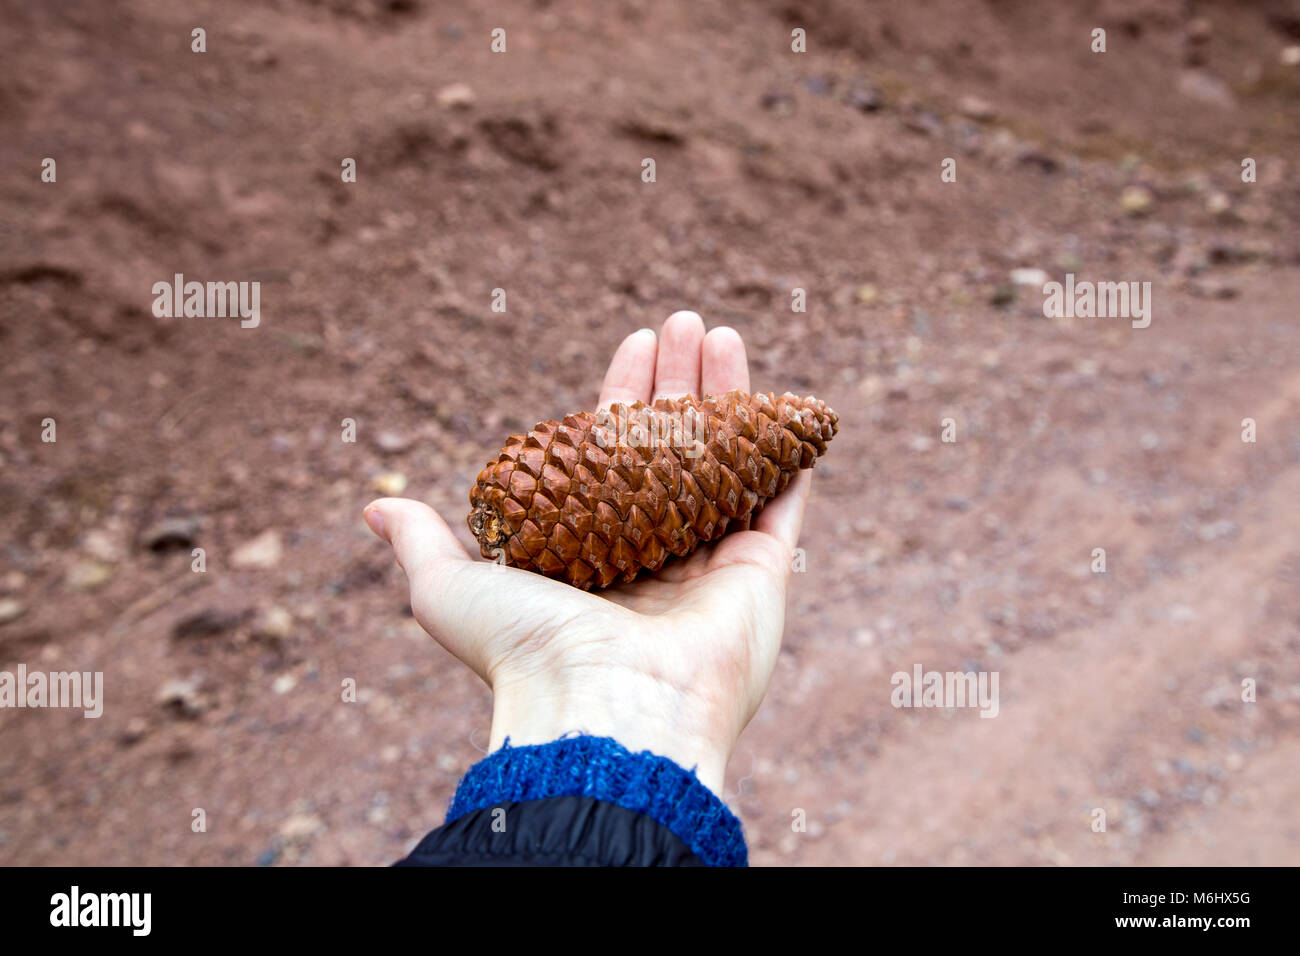 Hand holding pine cone with a barren ground background, Atlas Mountains, Morocco - Stock Image